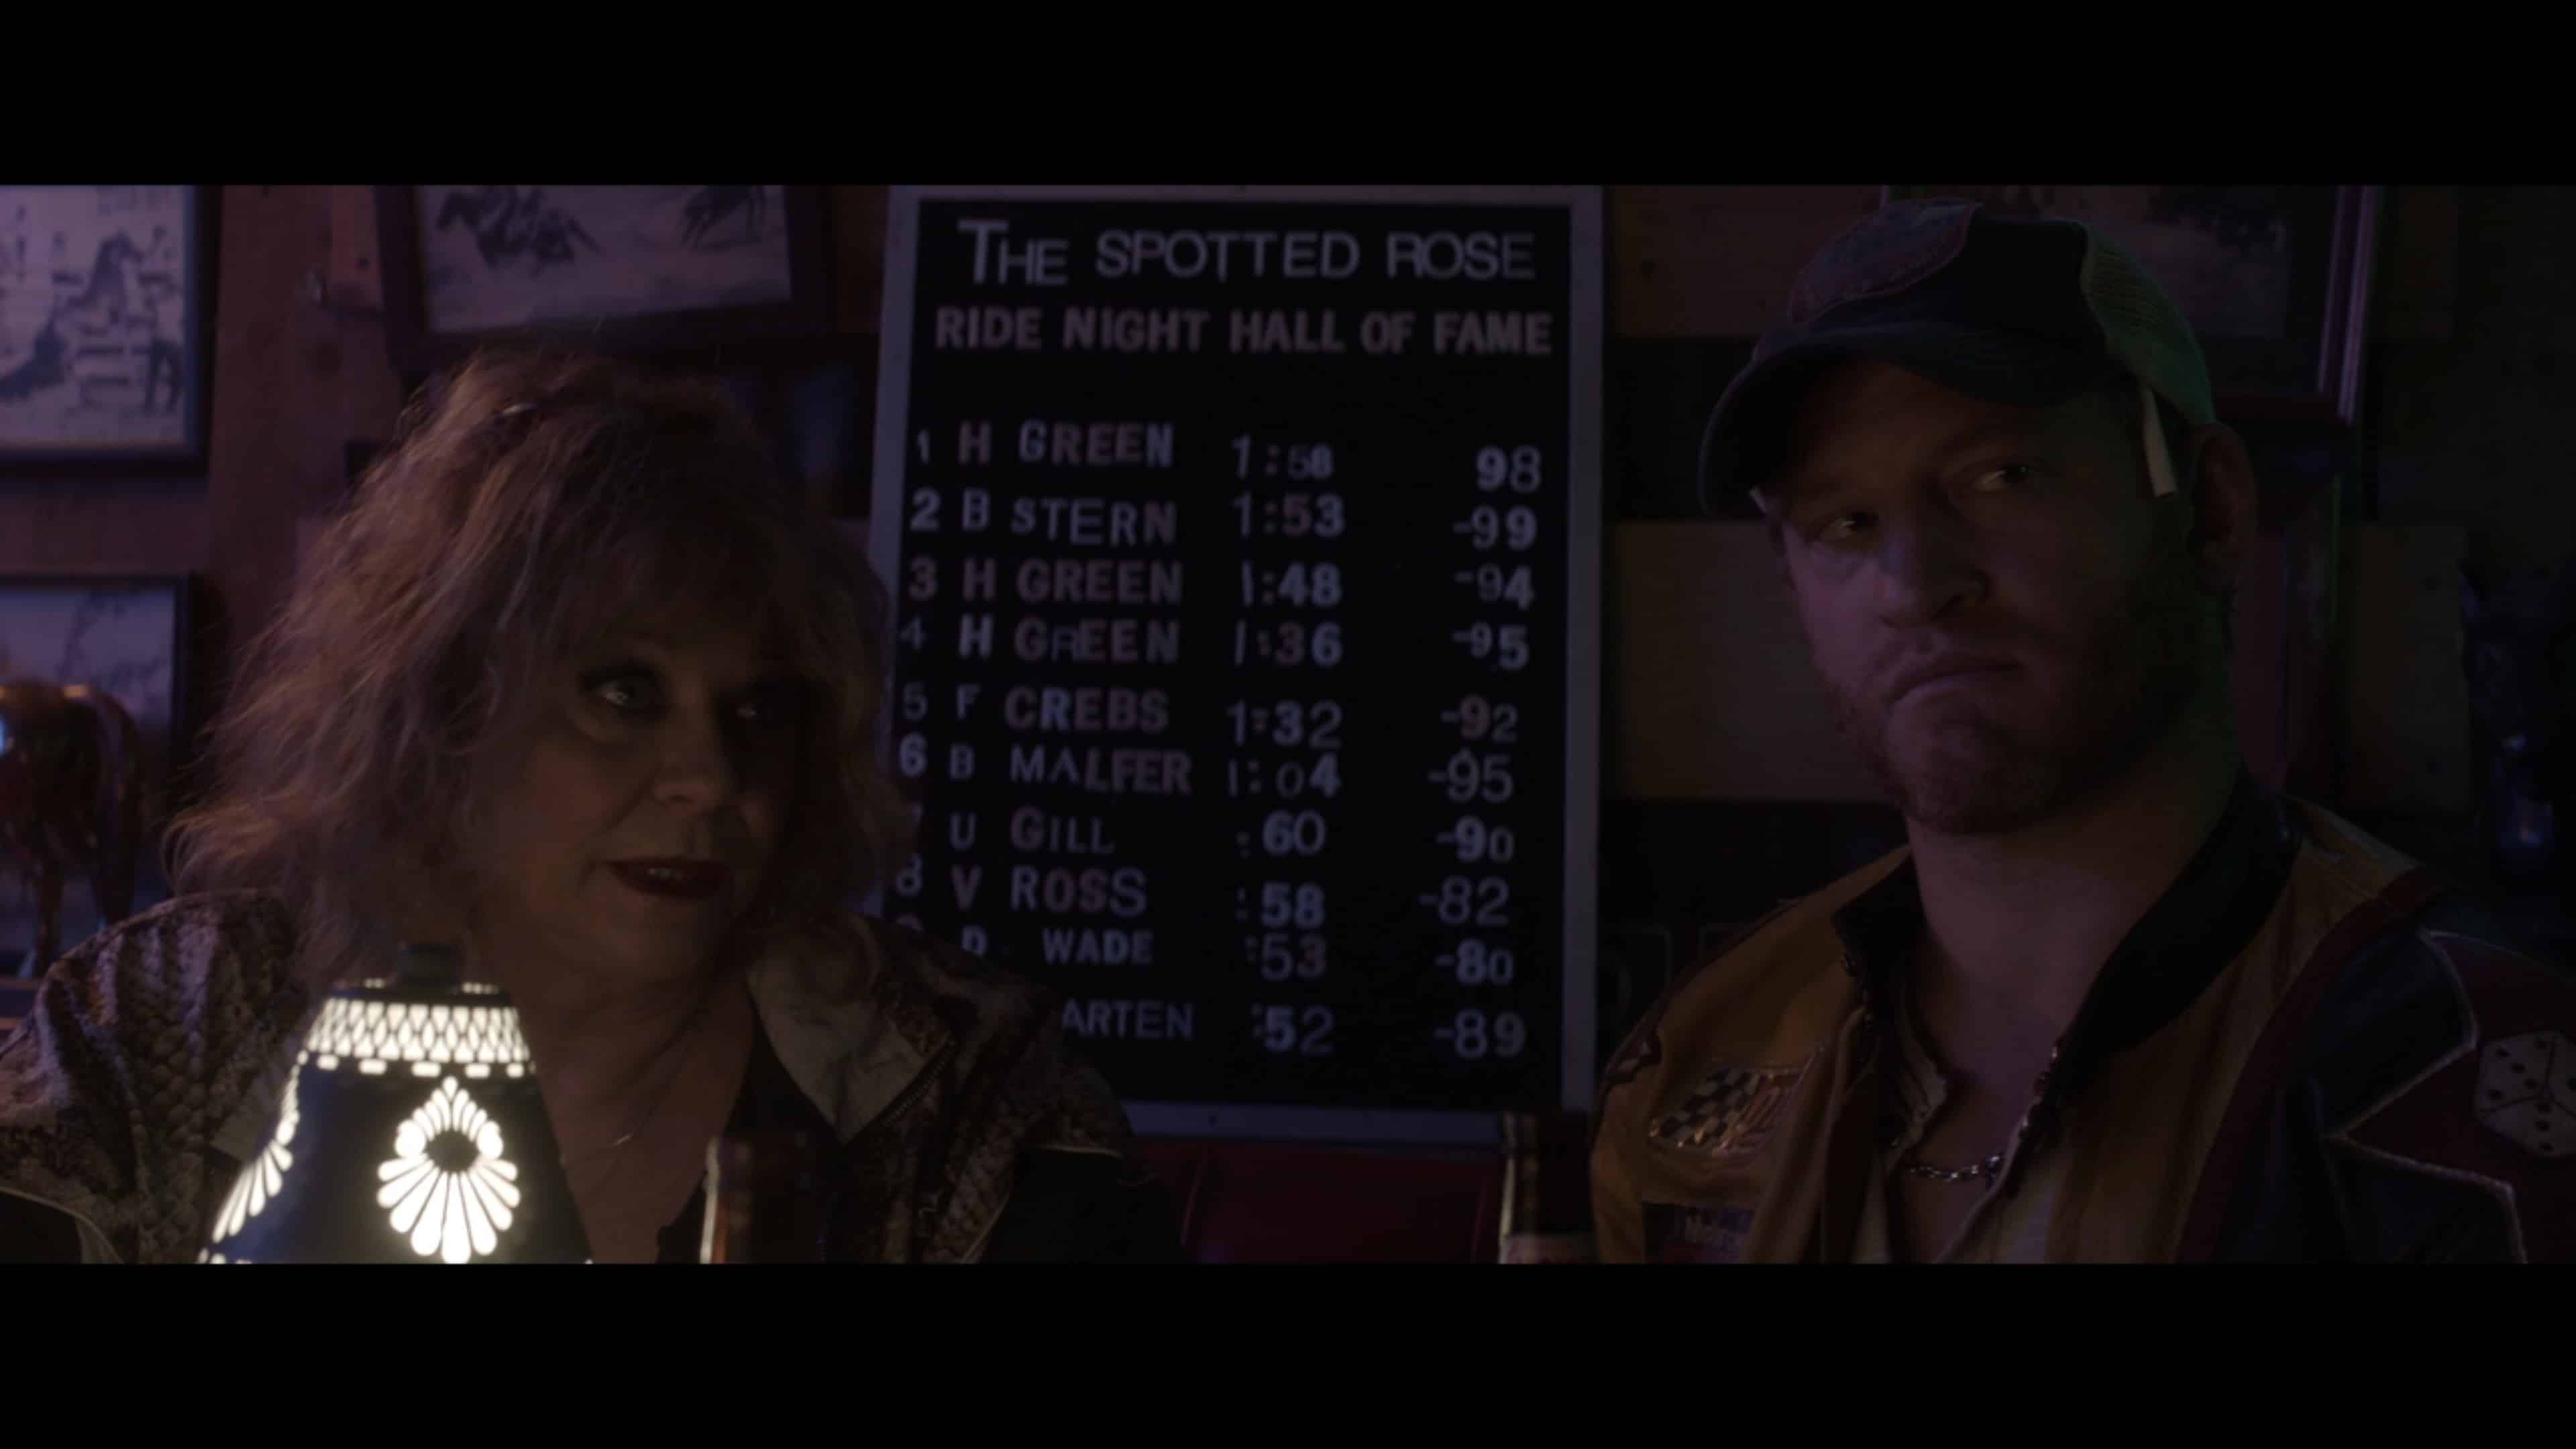 Ma Voss (Jeanette O'Connor) and Danny (Brent Chase) making a deal with Herb